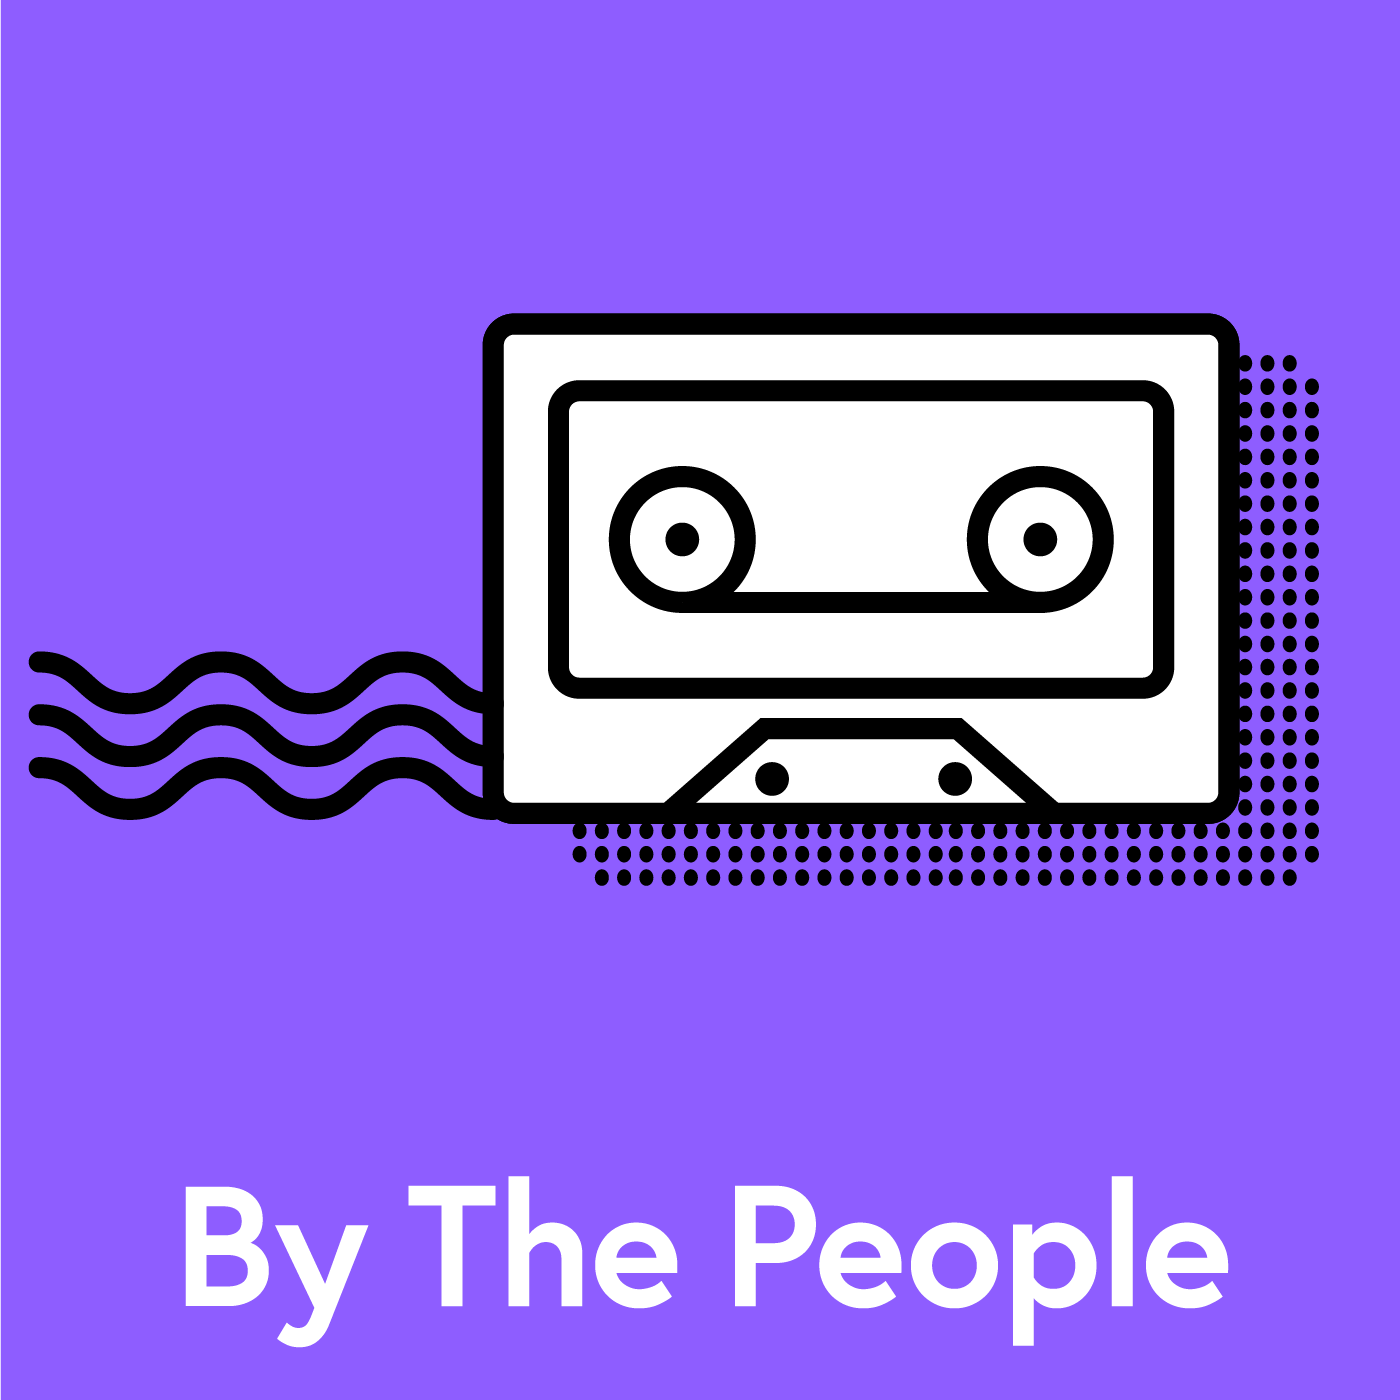 By The People - For The People